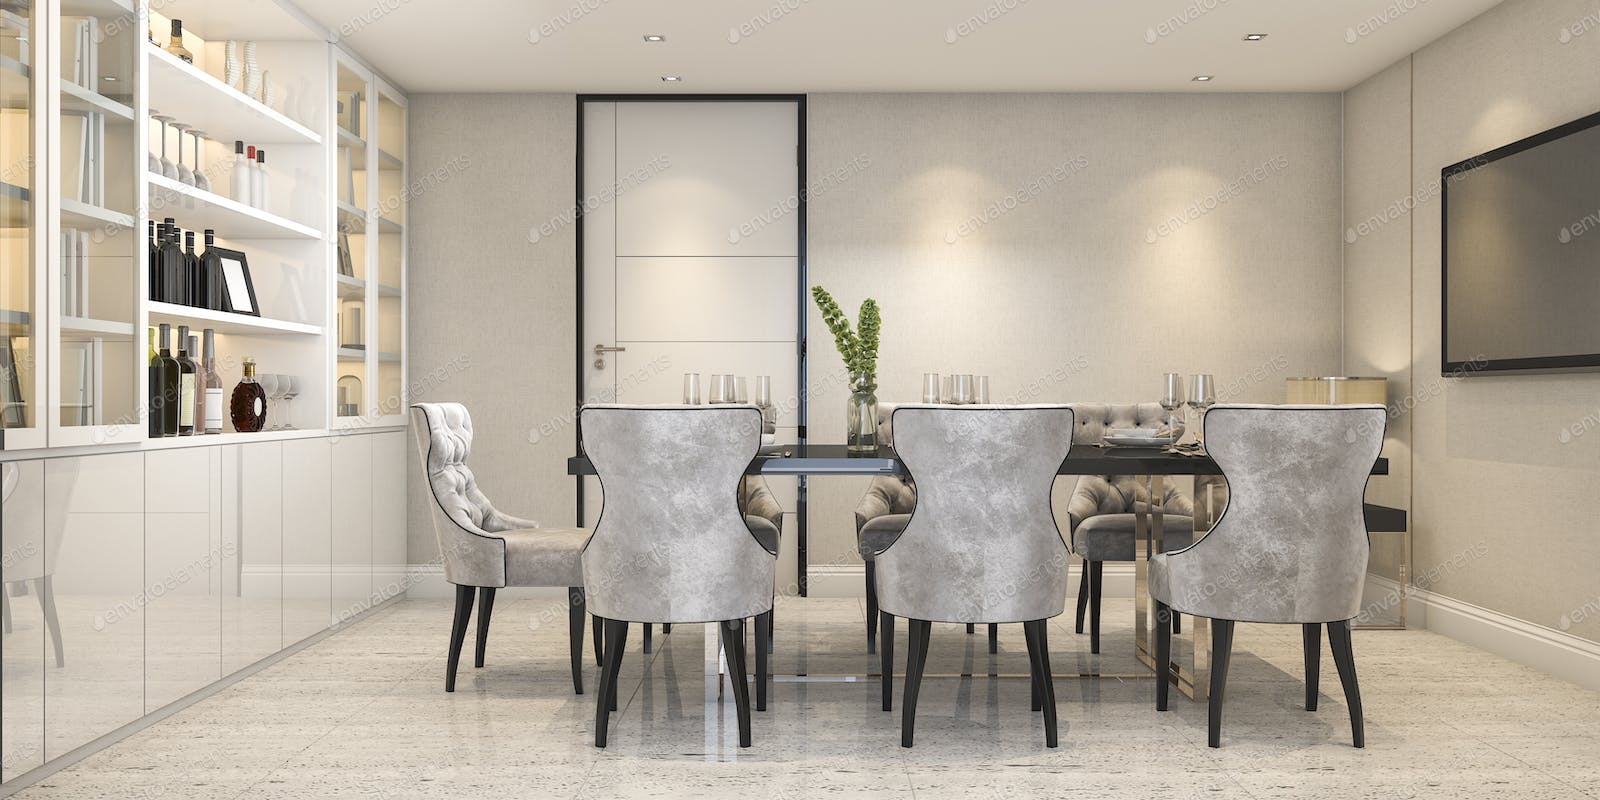 3d Rendering Dining Set In Modern Luxury Dining Room Near Door Photo By Dit26978 On Envato Elements